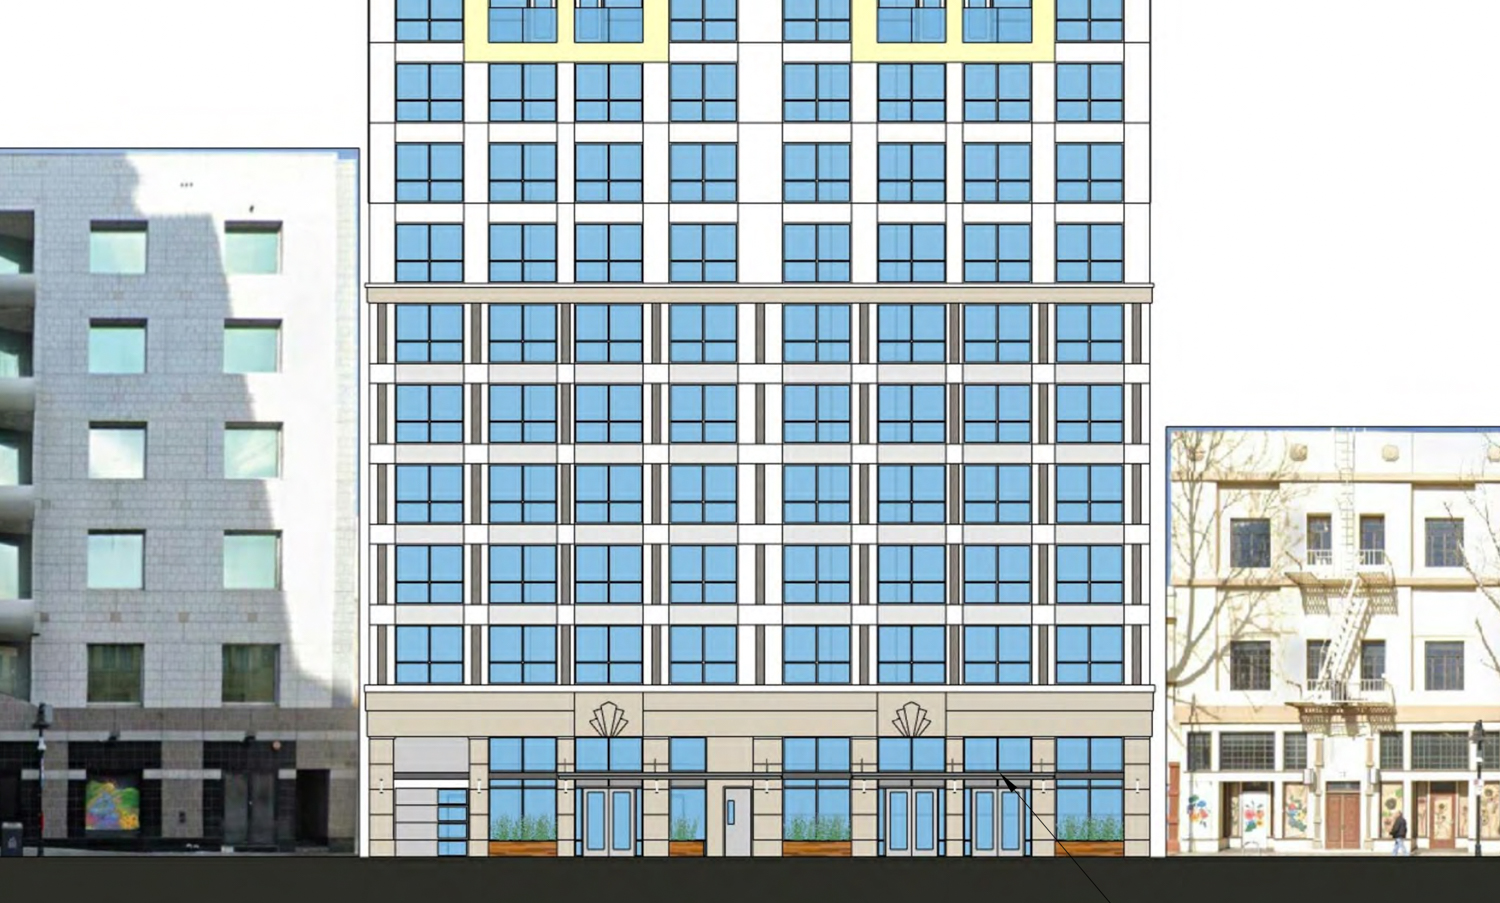 17 East Santa Clara Street street view beside existing buildings, elevation by Anderson Architects